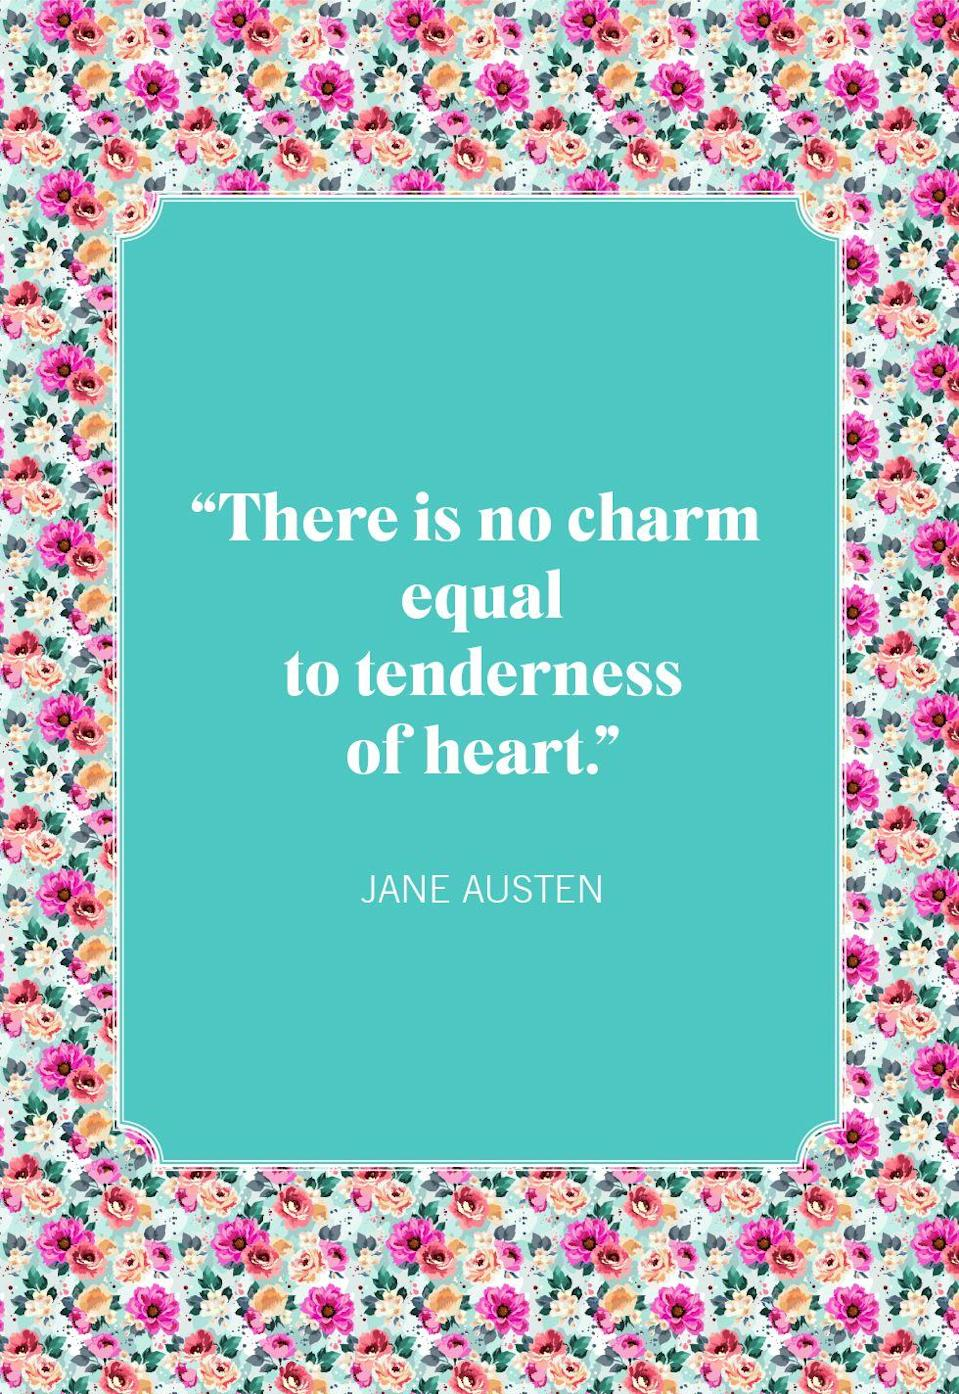 "<p>""There is no charm equal to tenderness of heart.""</p>"